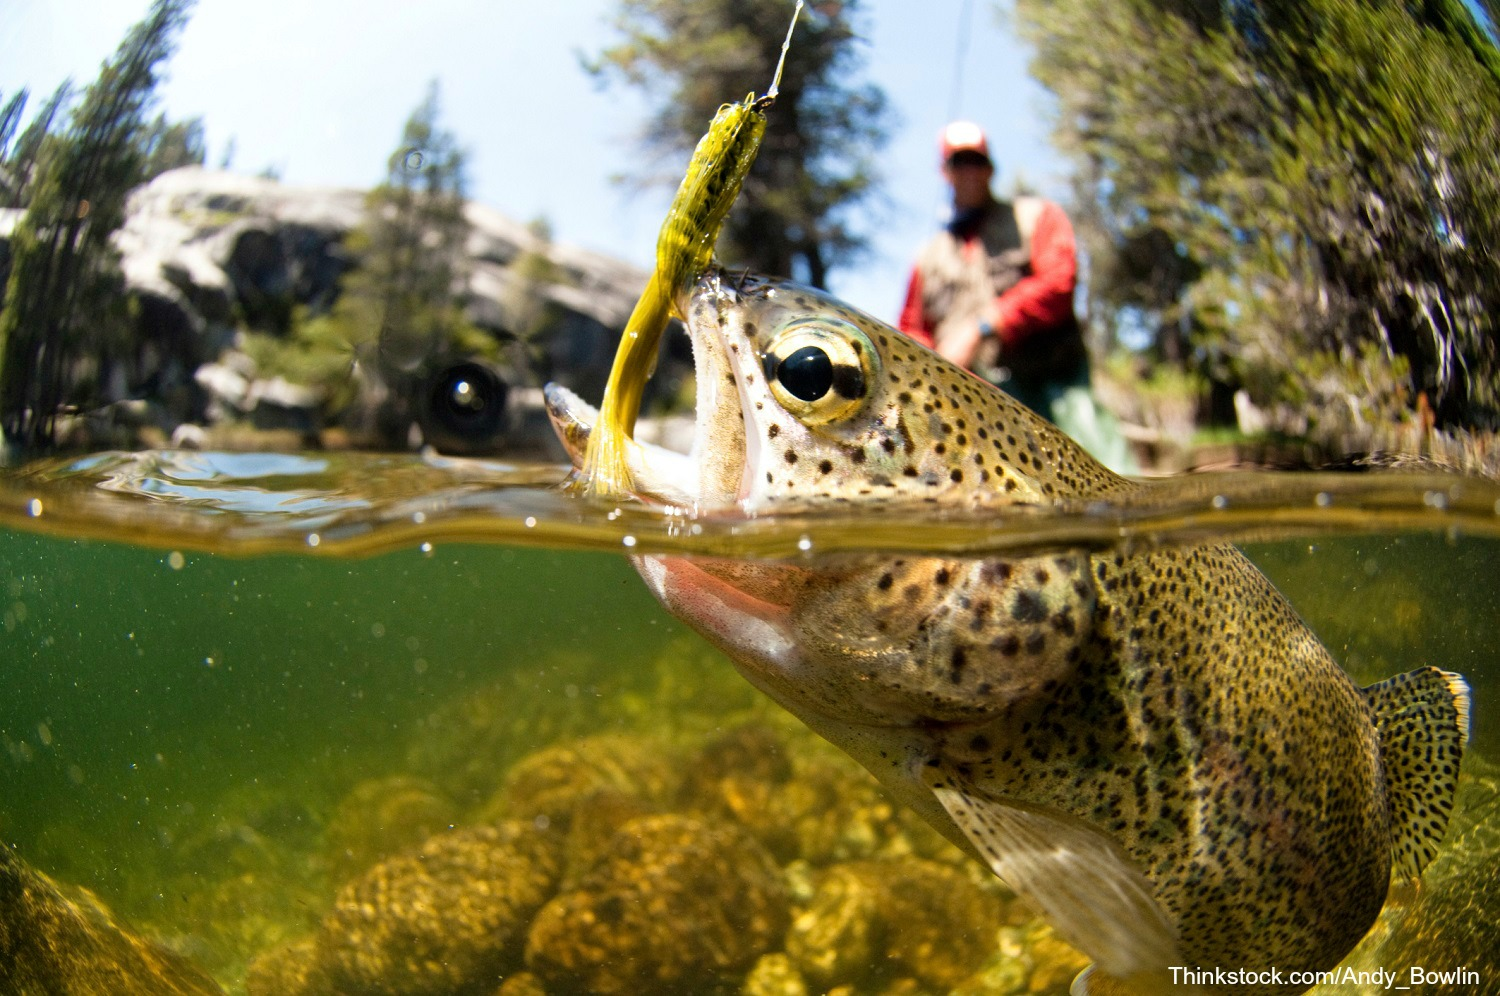 Learn the art of fly fishing through casting practices, outings, and more!